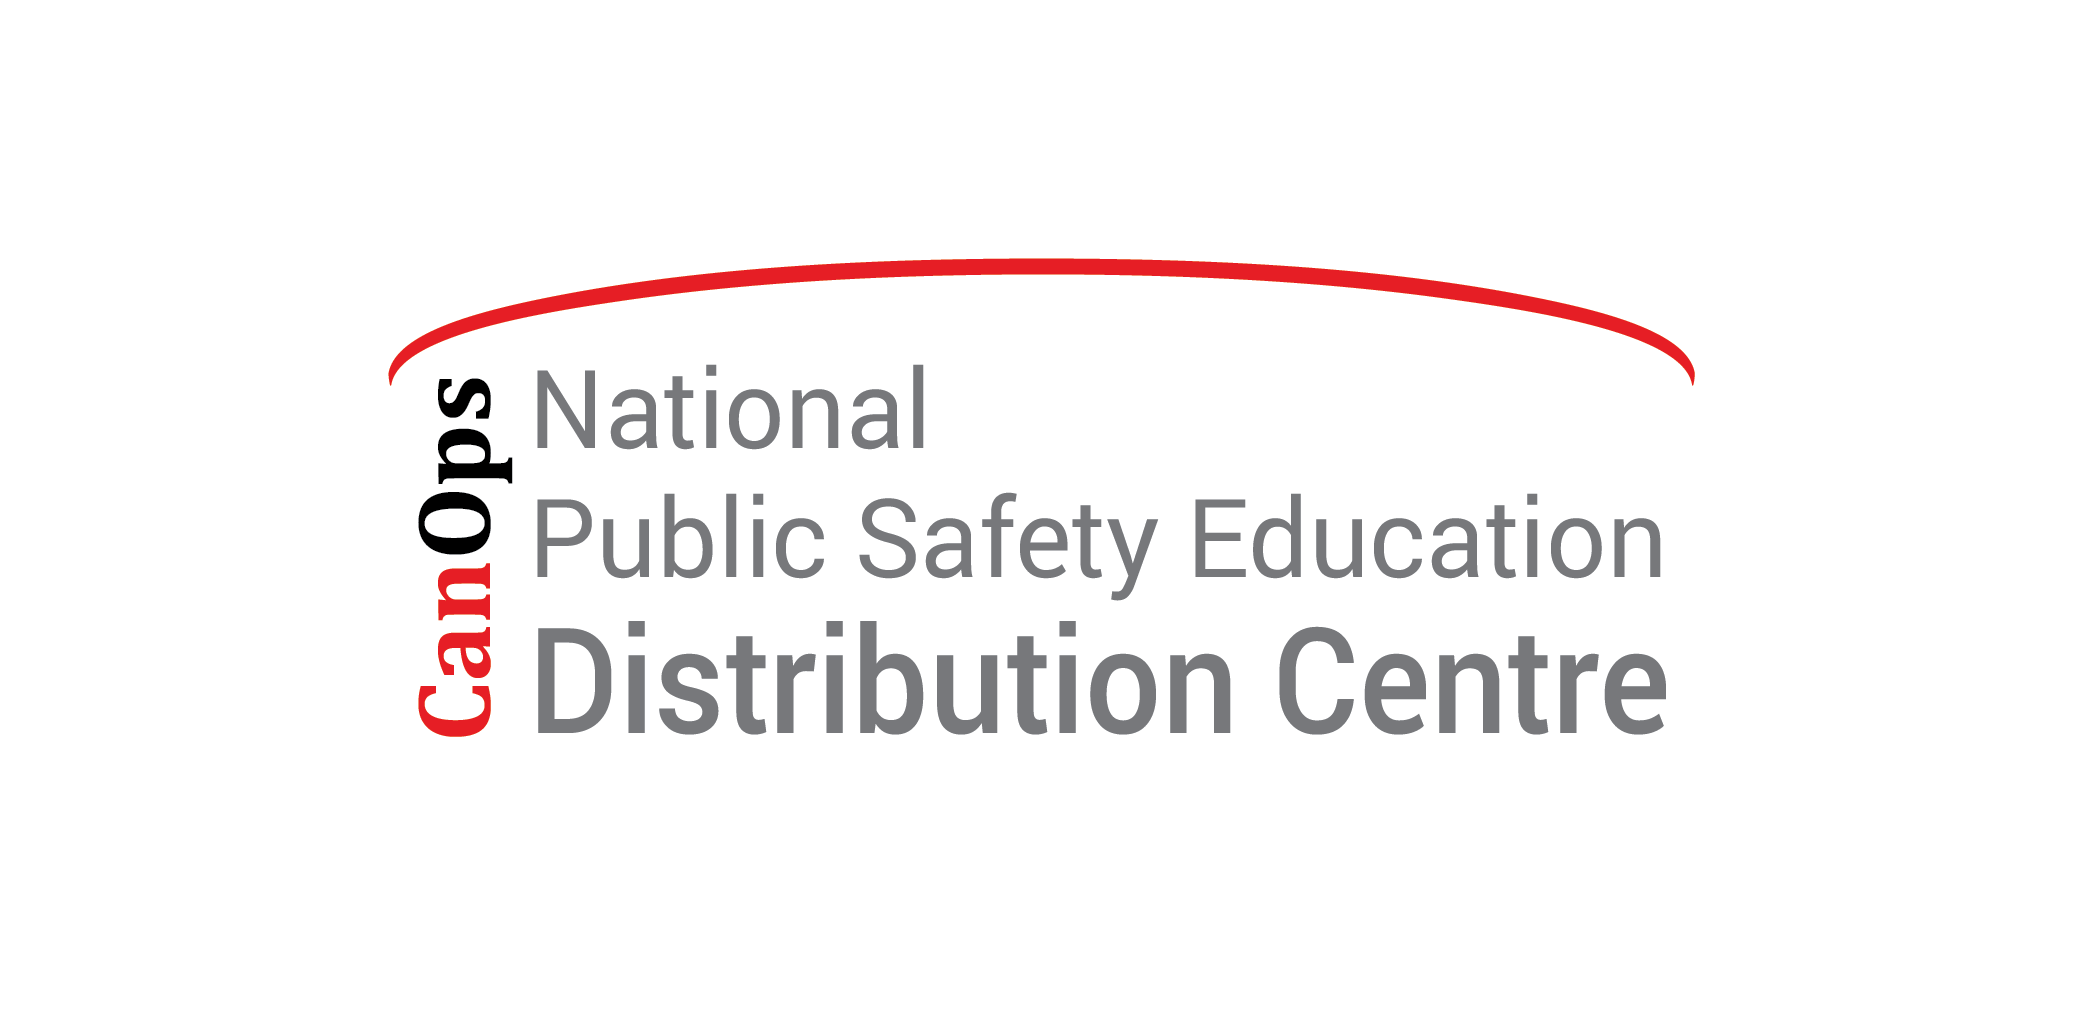 Public Safety Education Distribution Centre